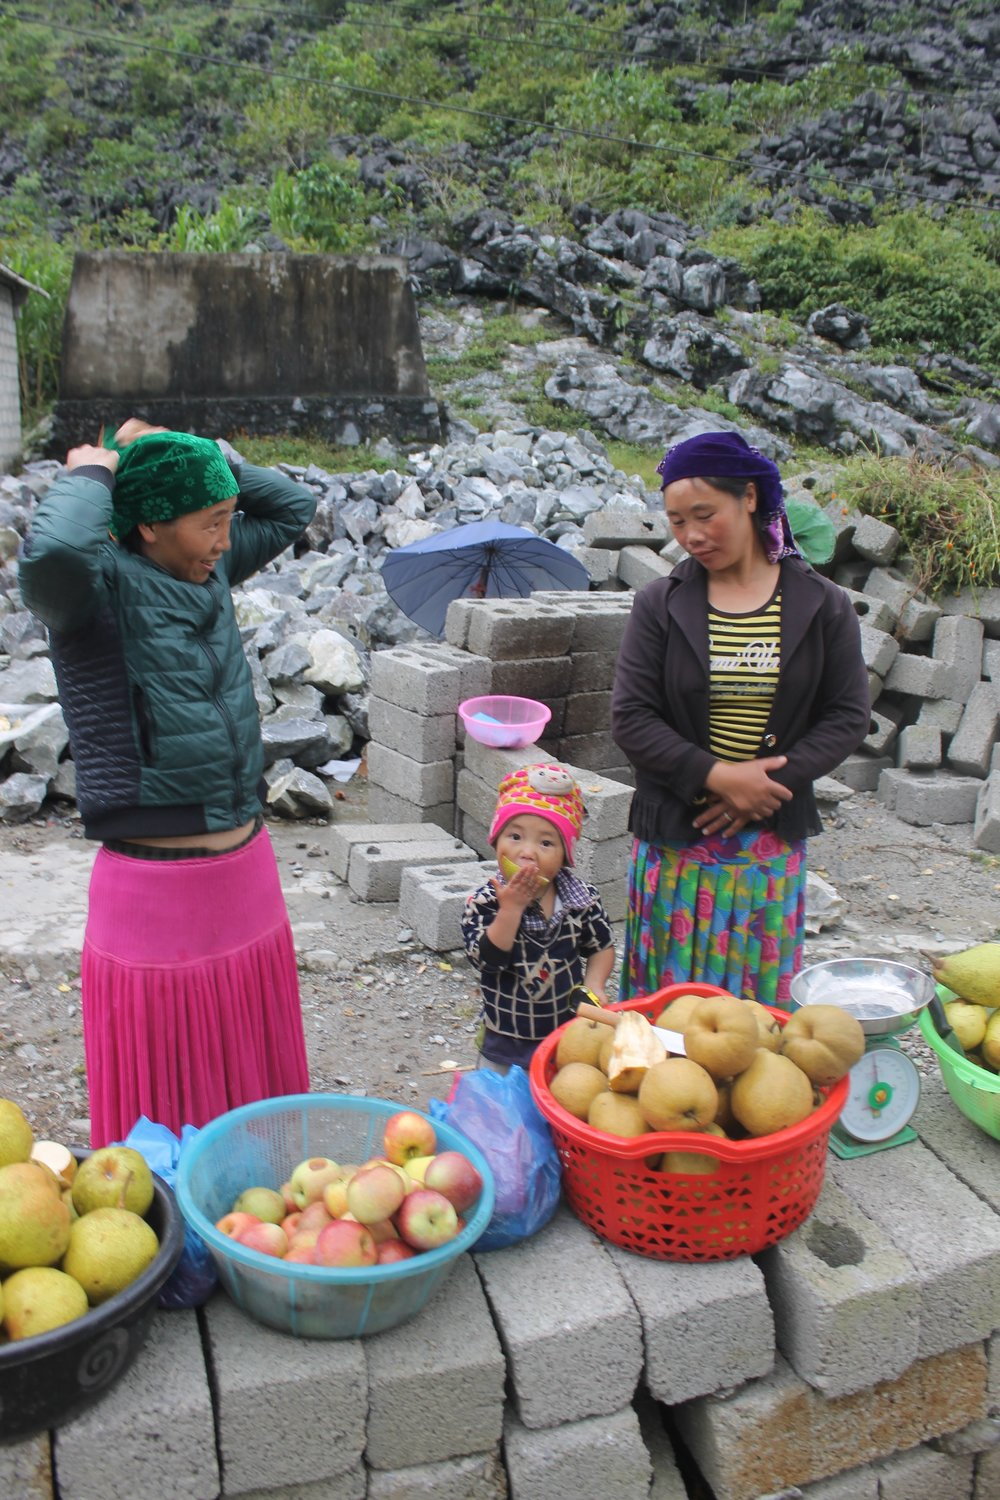 Fruit selling is a family business here. Photo taken roadside in Ha Giang.